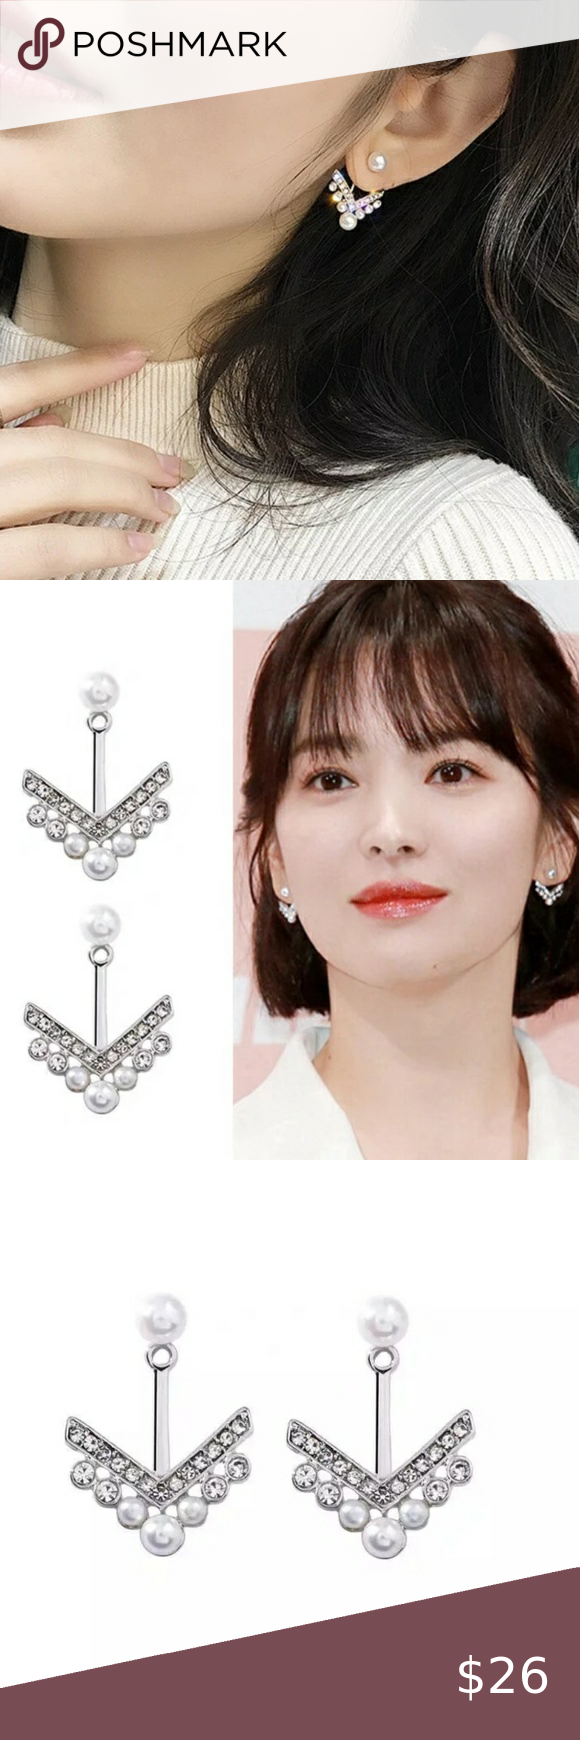 Double Sided Front Back Pearly Arrow Earrings Arrow Earrings Heart Earrings Studs Front Back Earrings